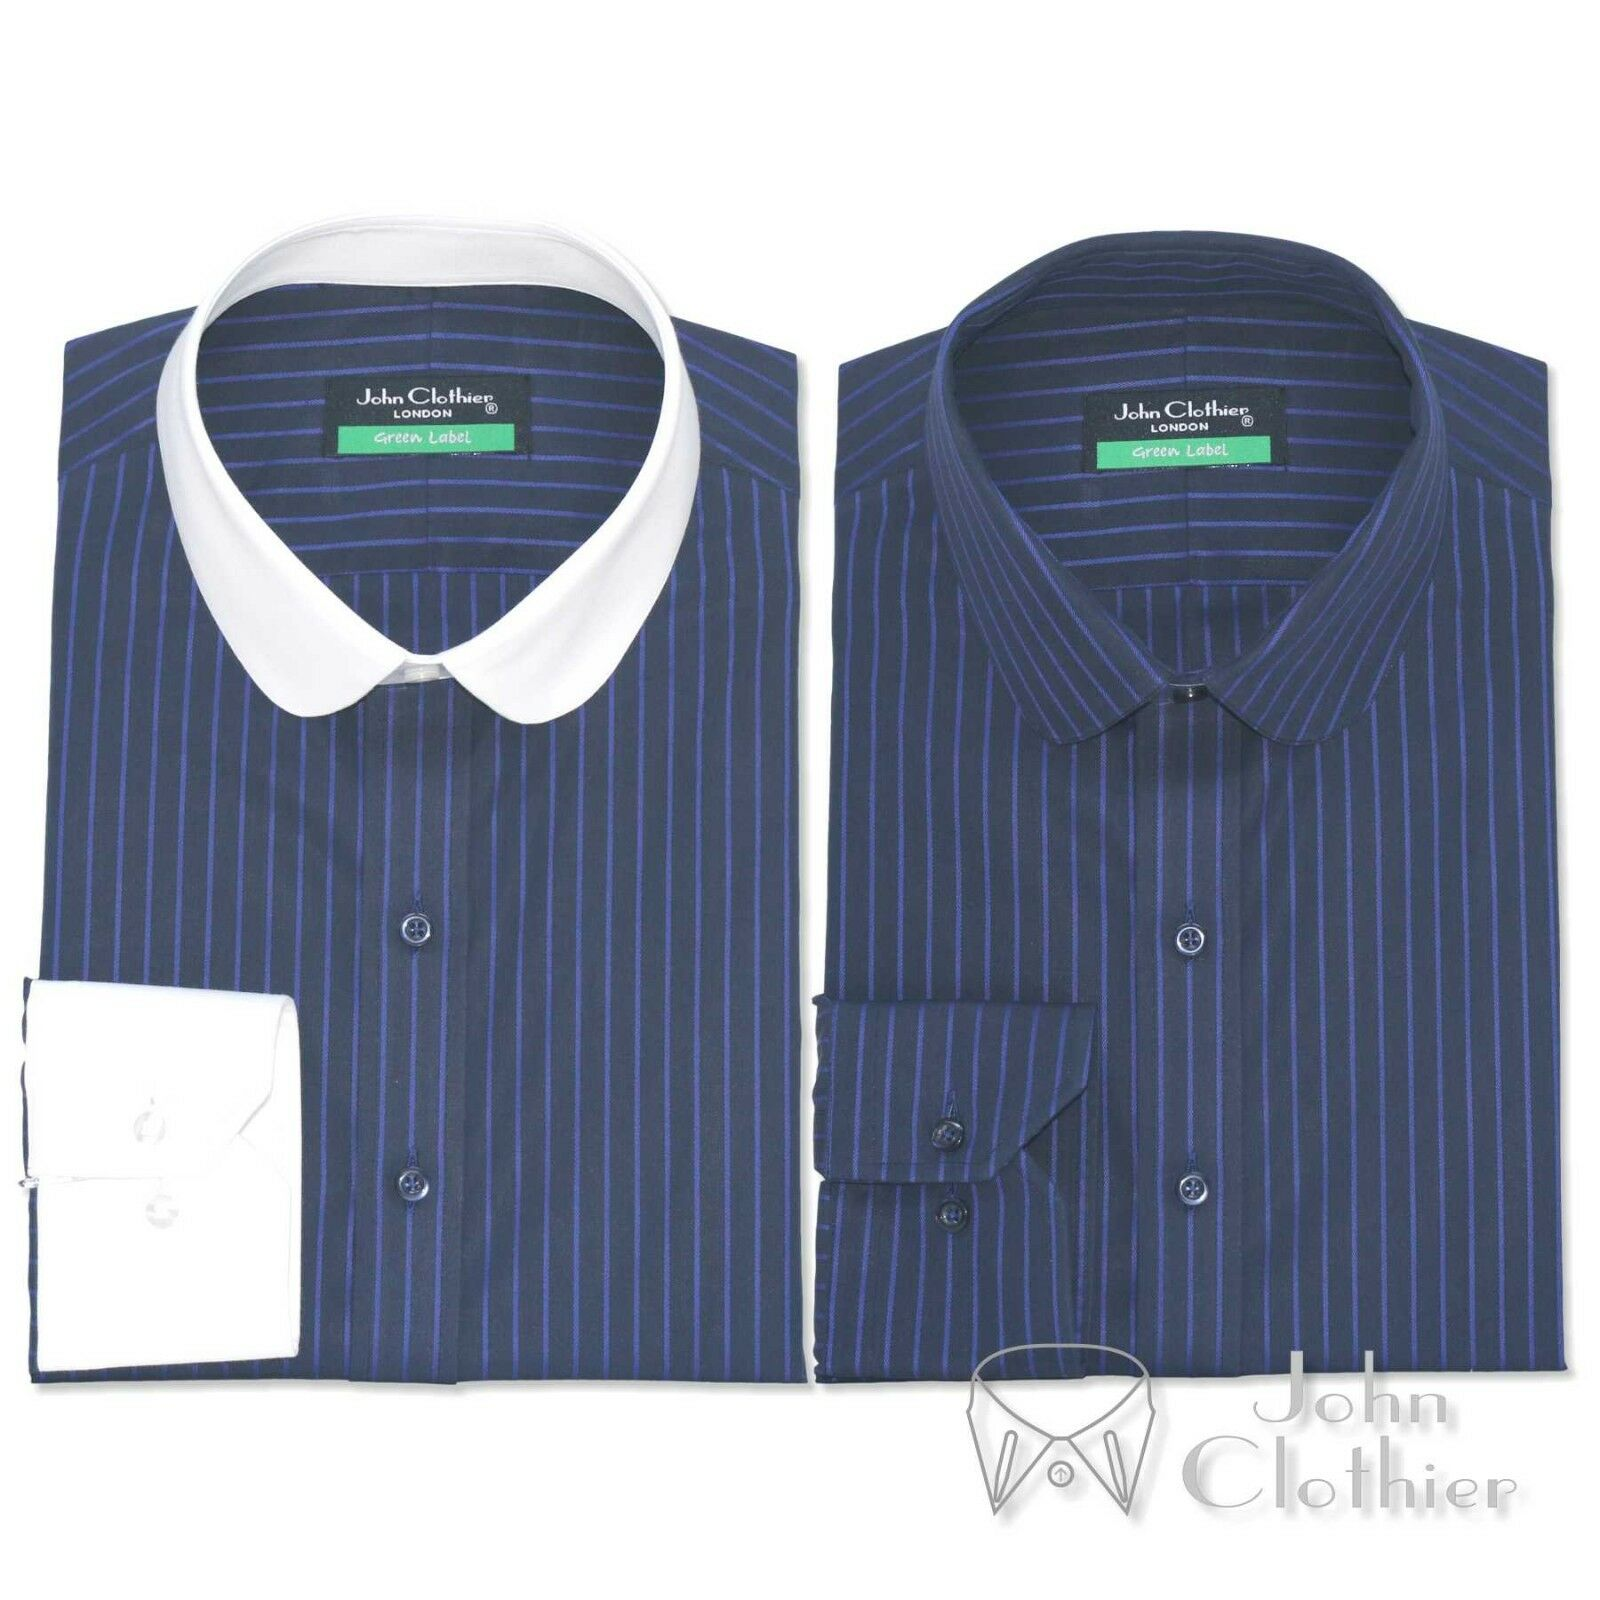 Penny collar Cotton  Herren shirt Navy Blau stripes Banker Weiß Club Round Gents